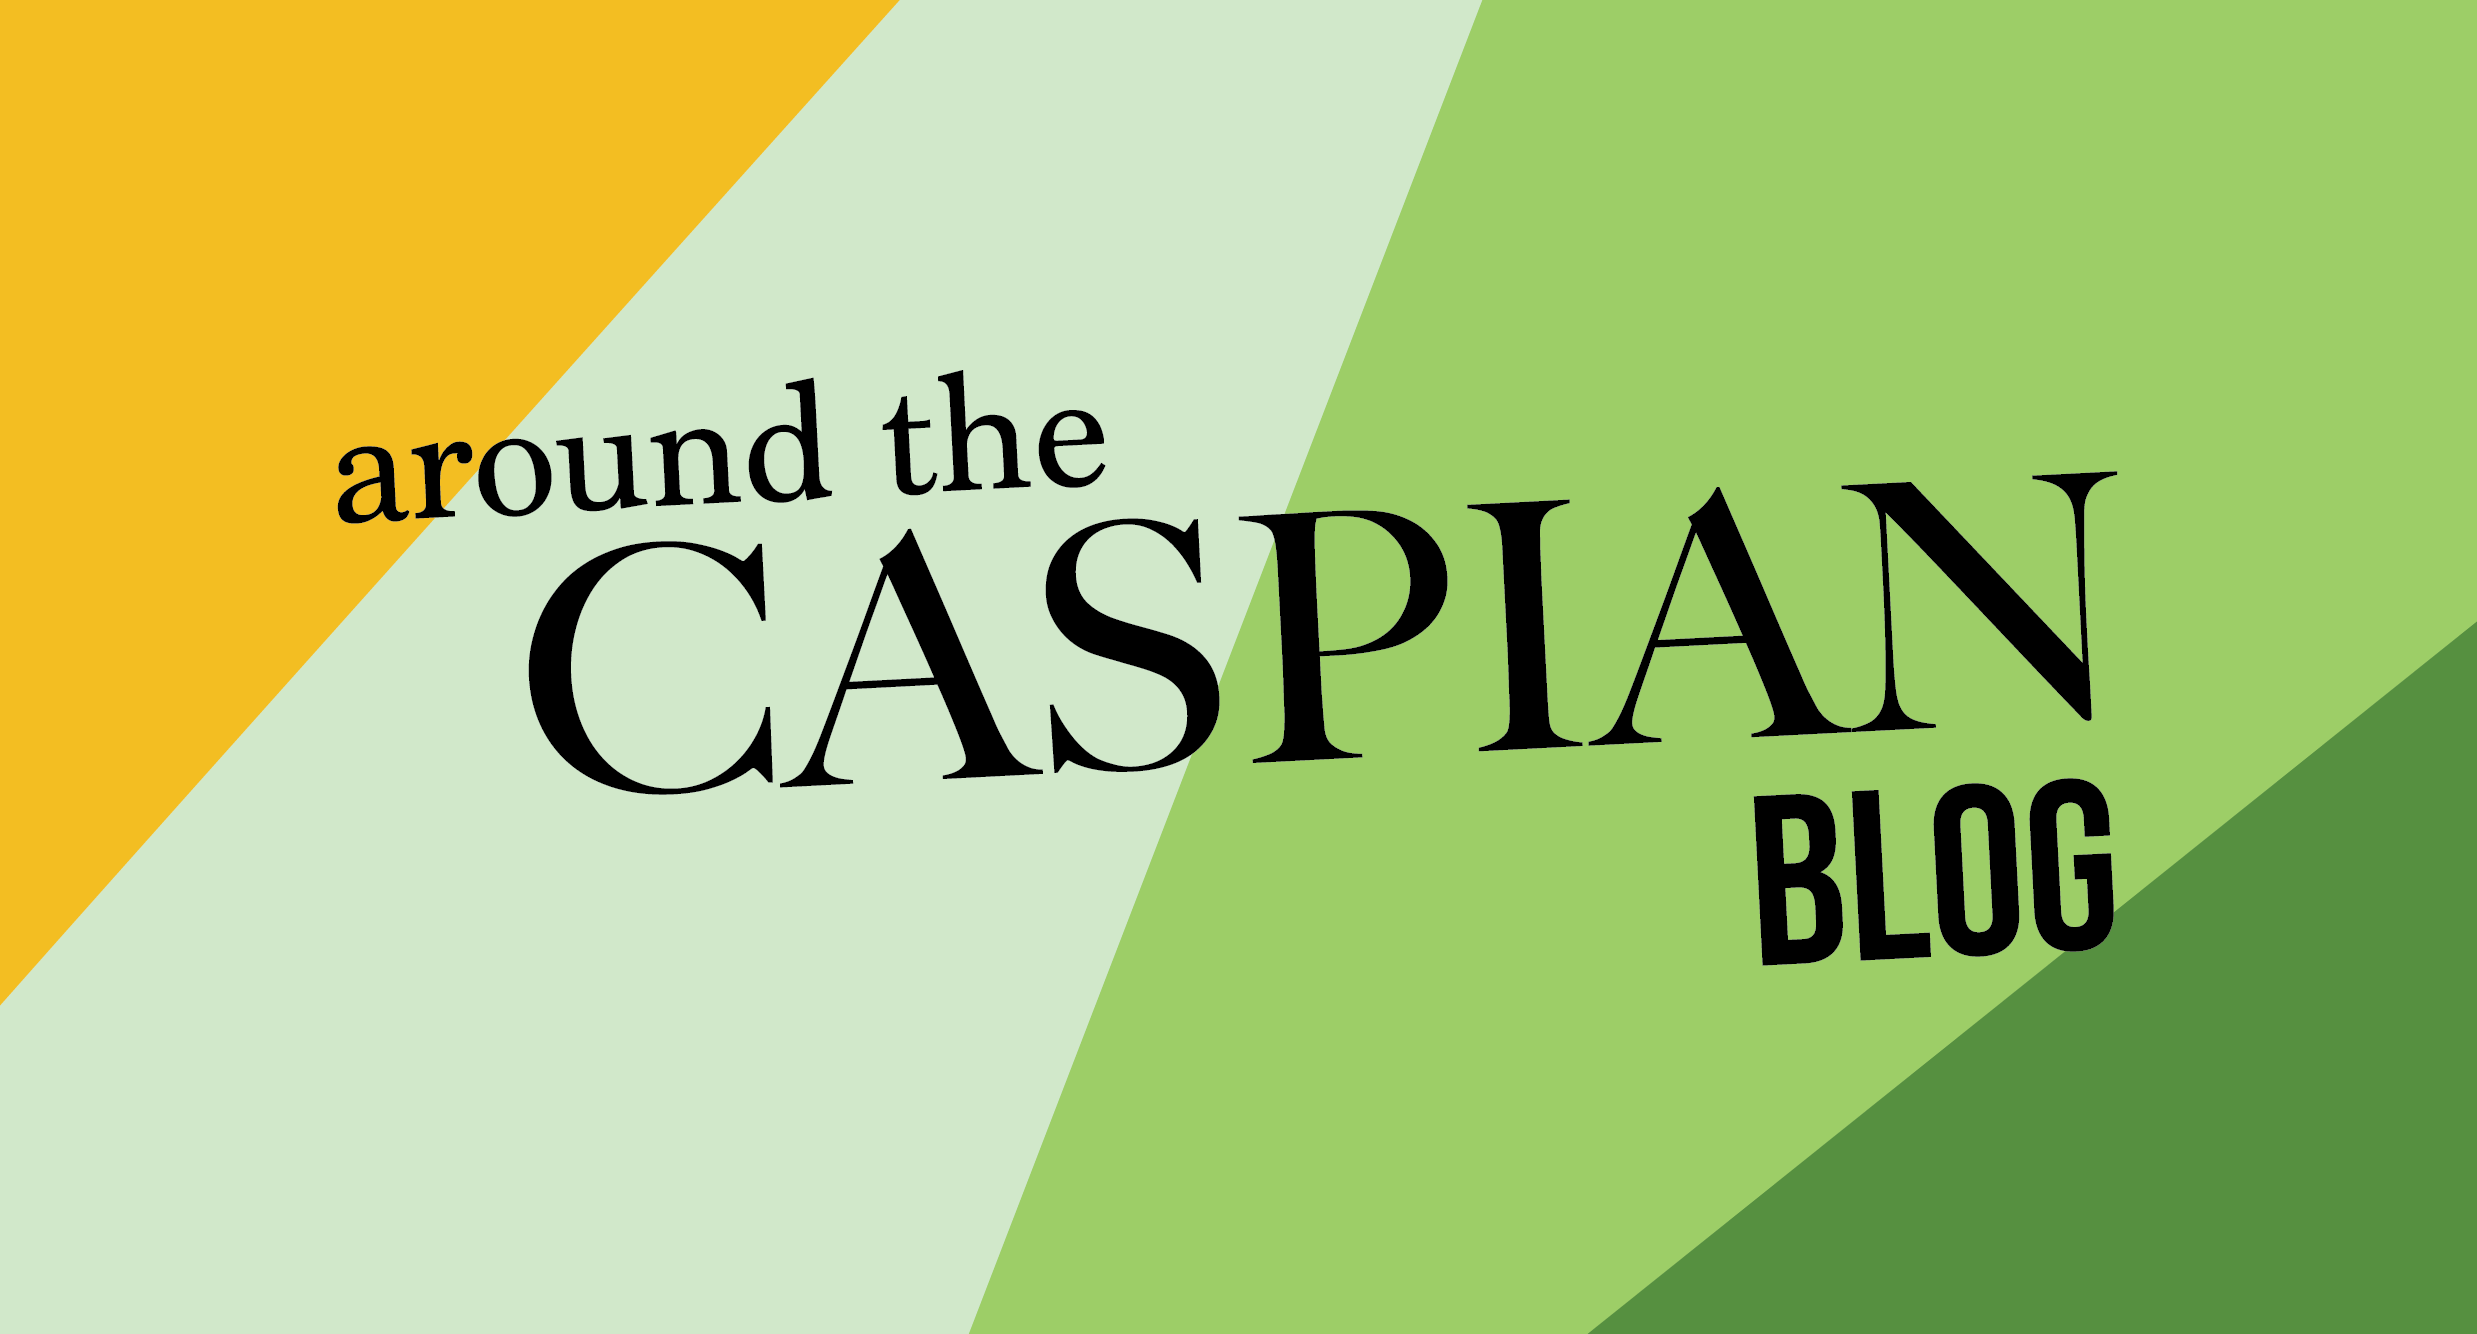 Around the CASPIAN Blog